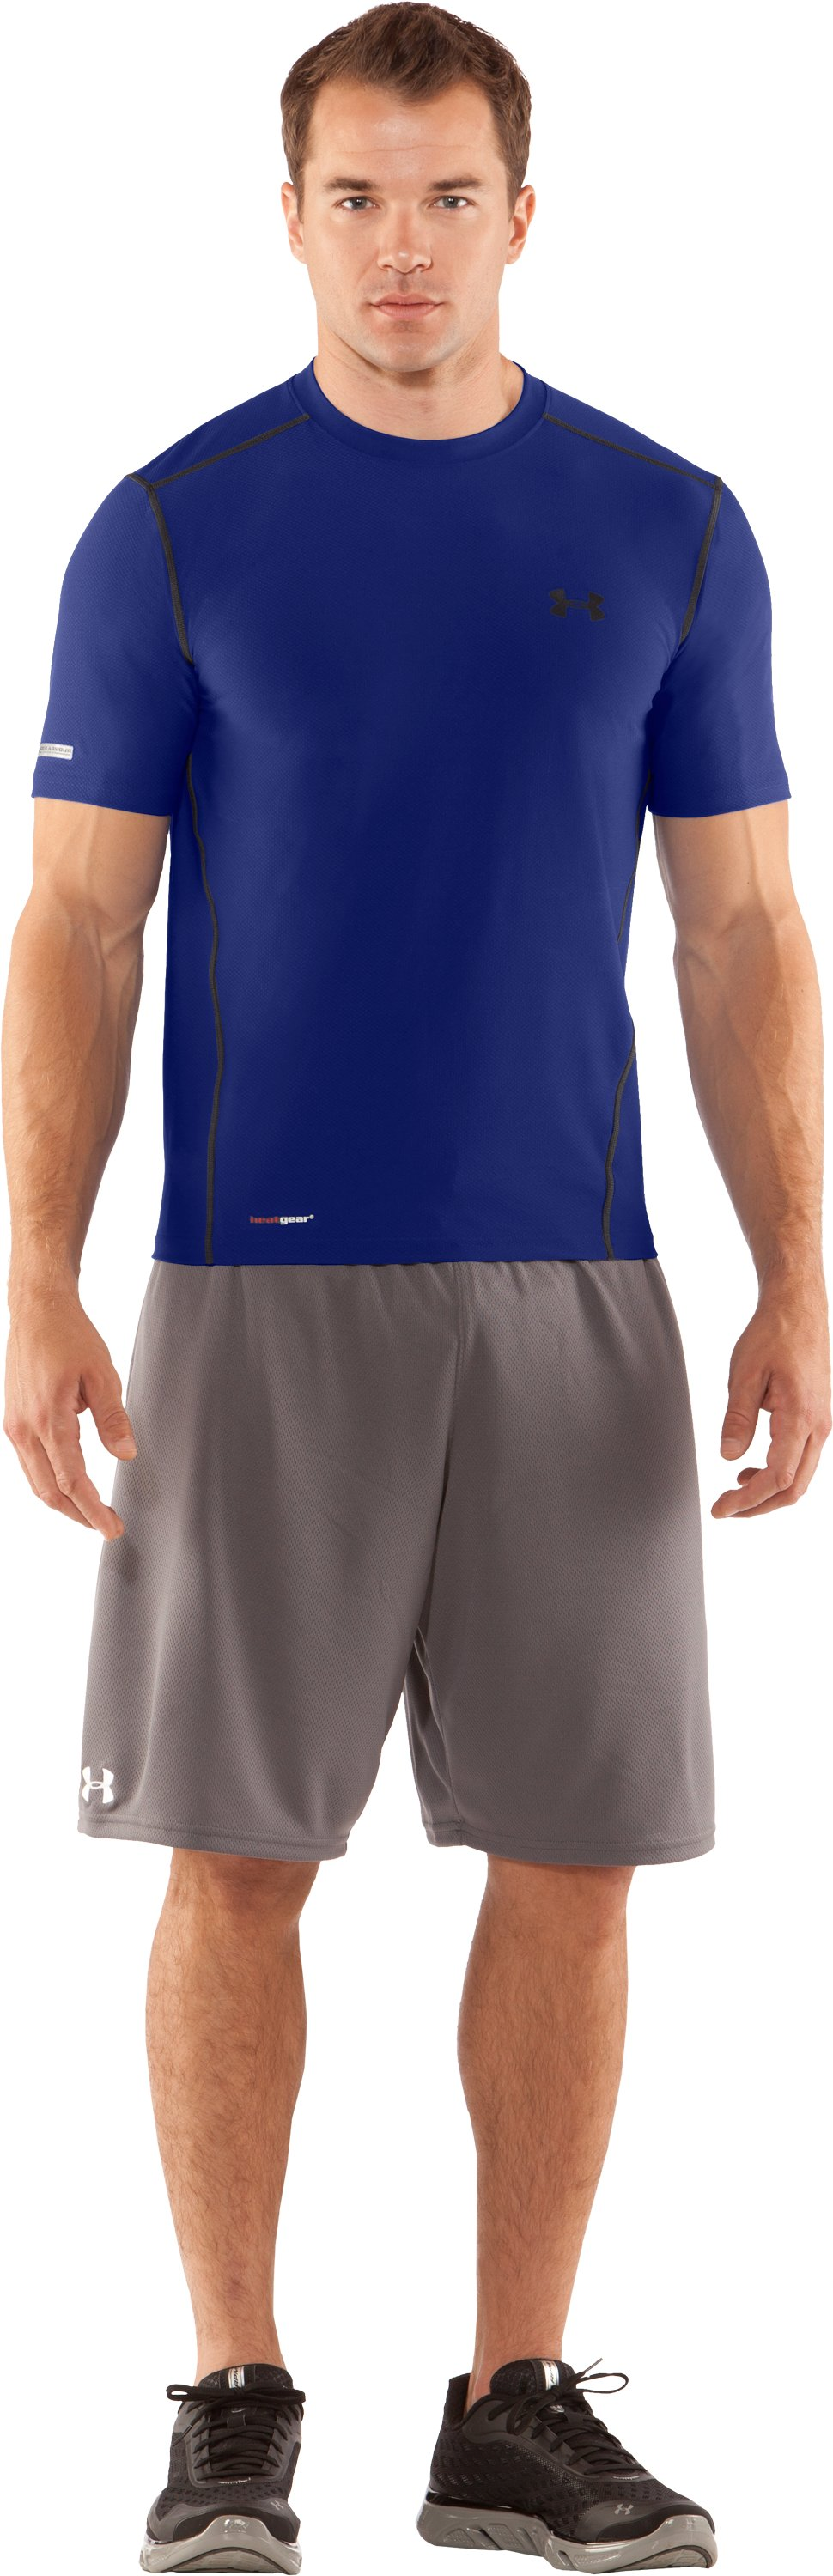 Men's HeatGear® Fitted Short Sleeve Crew, Royal, zoomed image